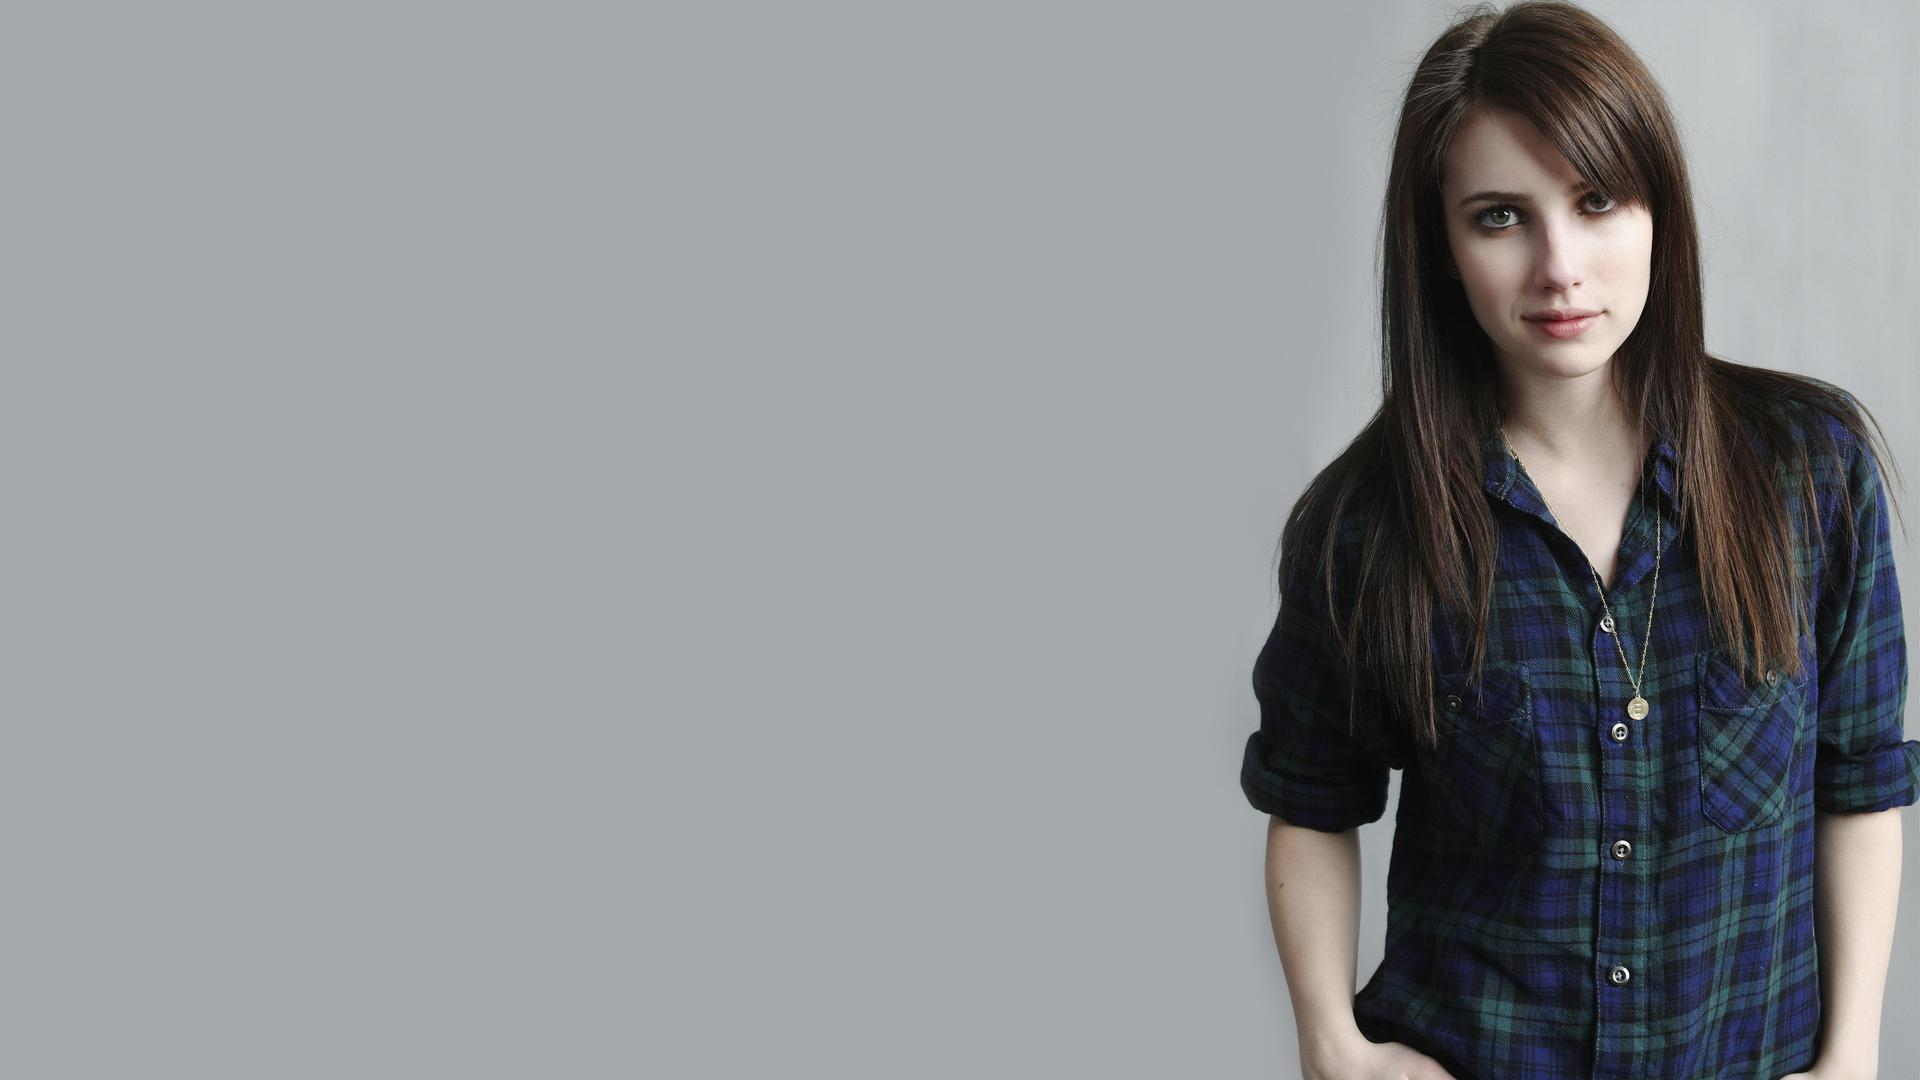 cute emma roberts beautiful hd wallpapers download free hd wallpapers of actresses